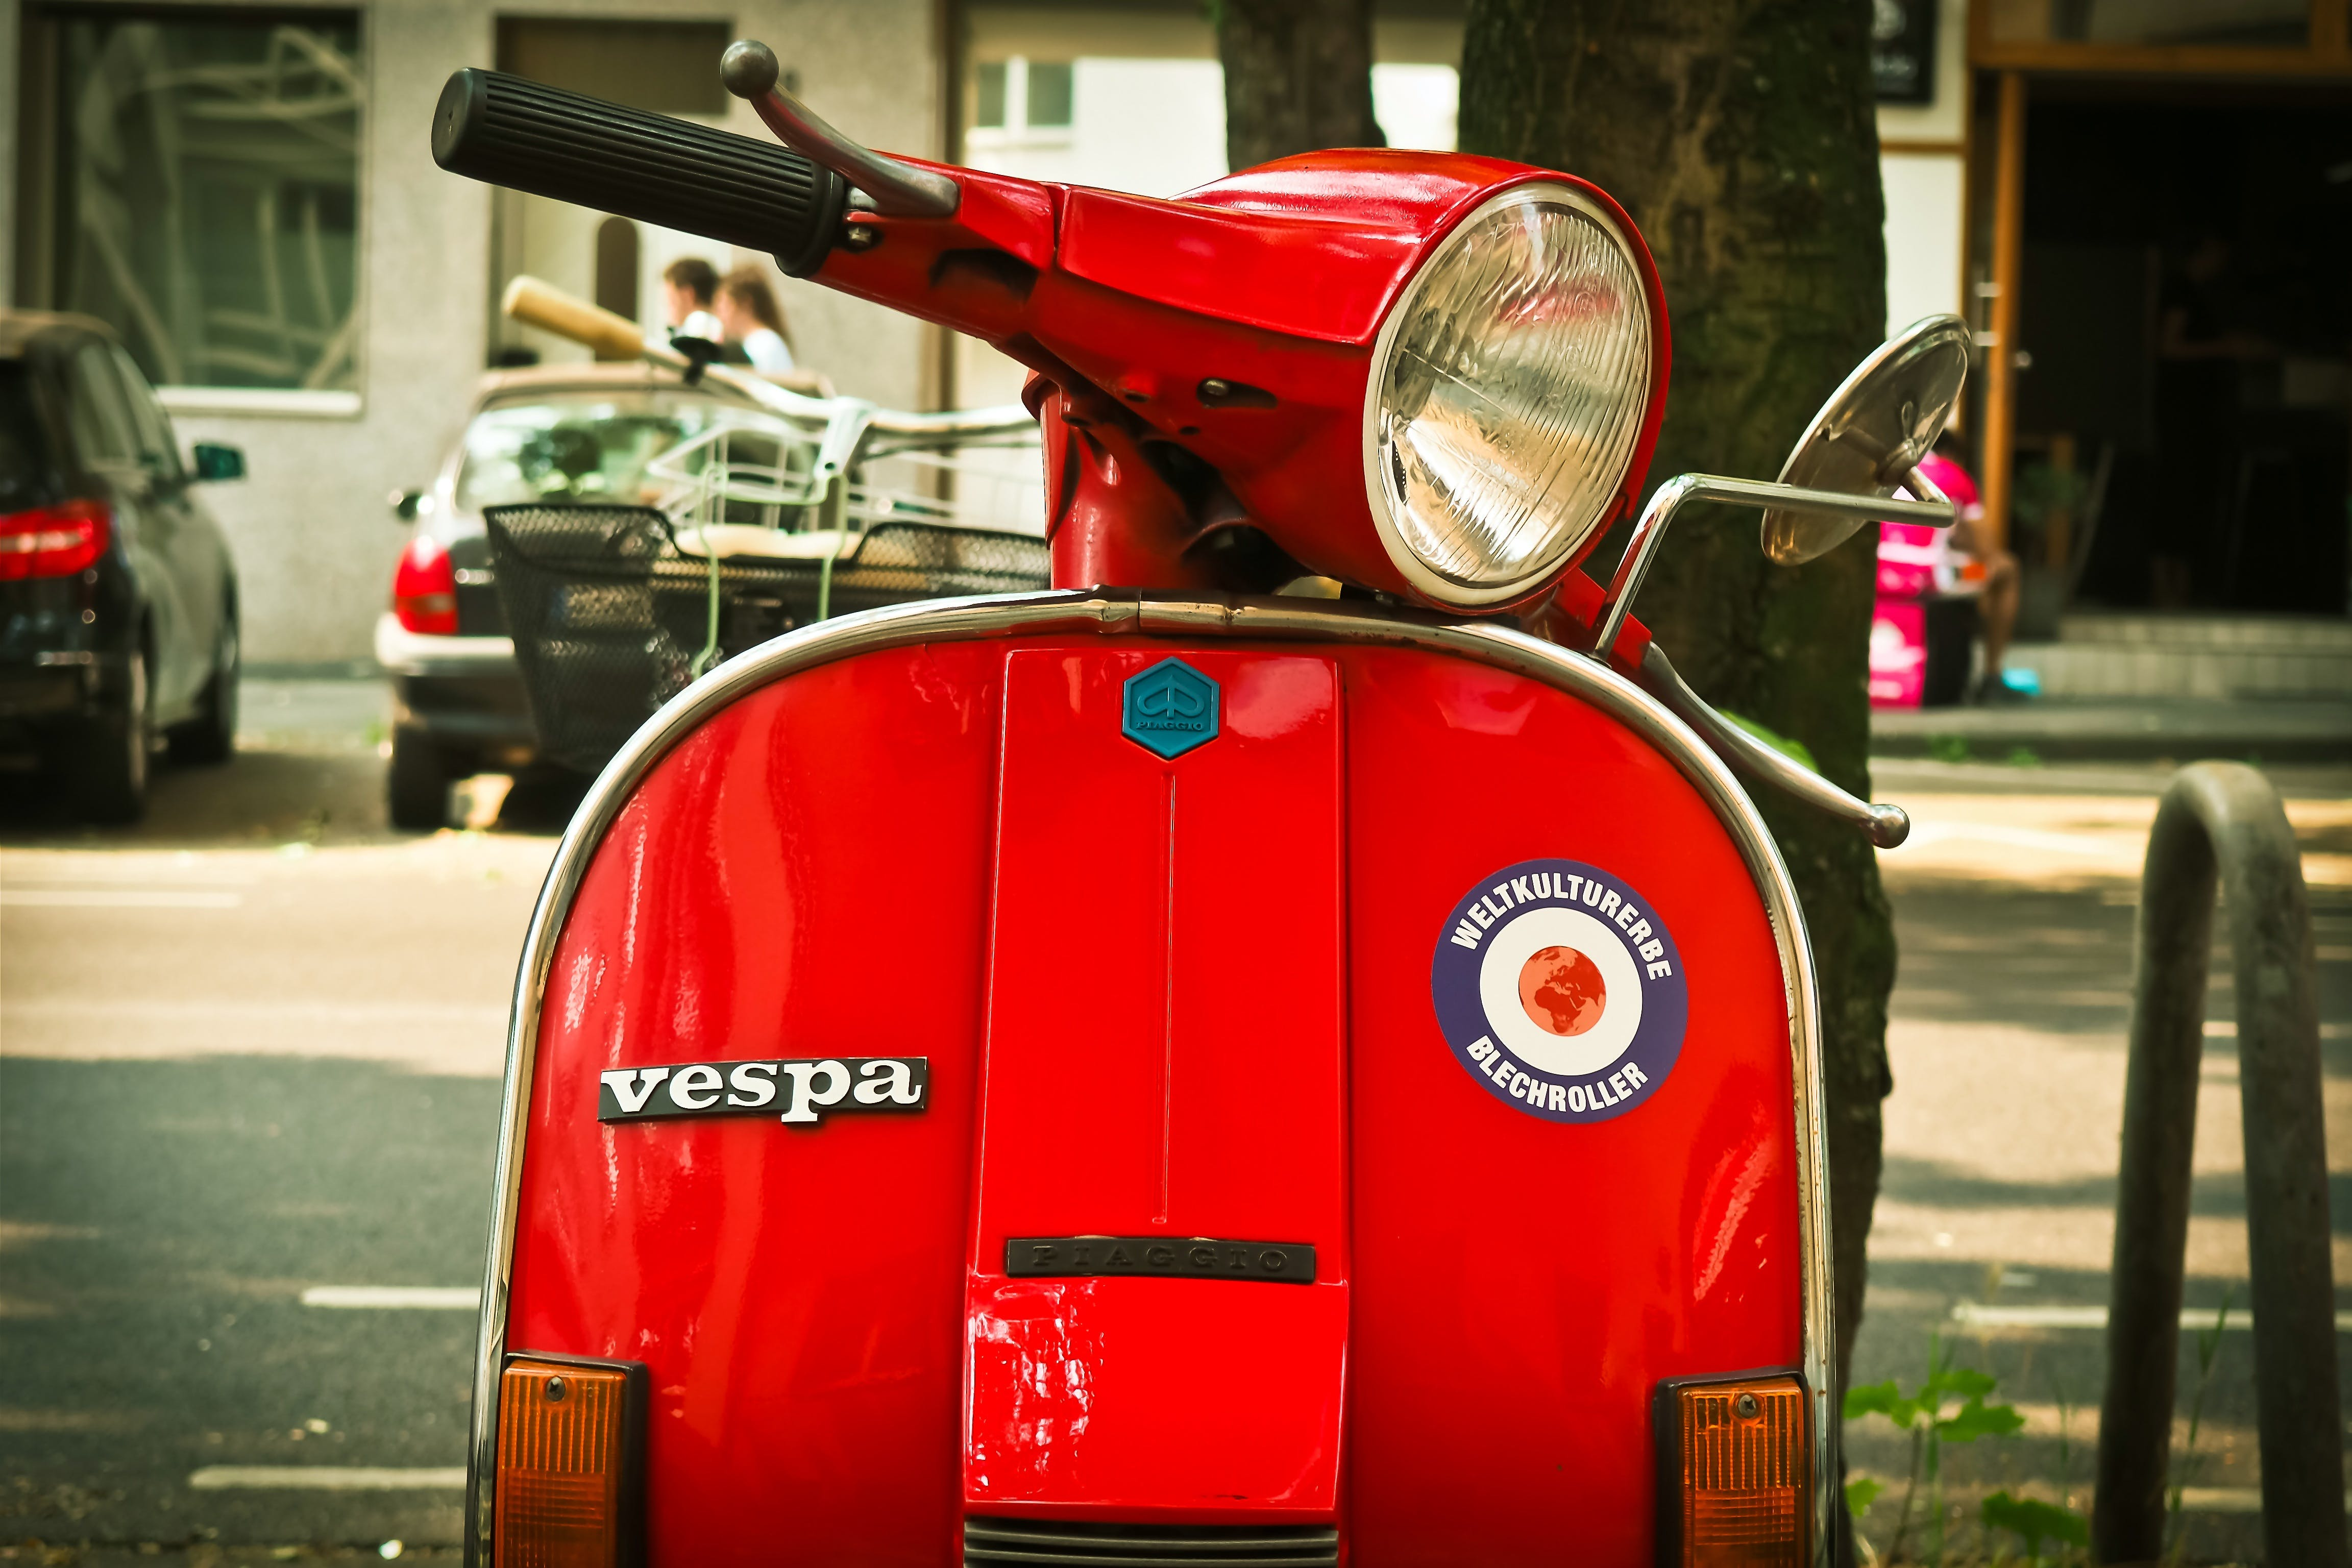 Red Vespa Motor Scooter Parked Near Tree during Daytime